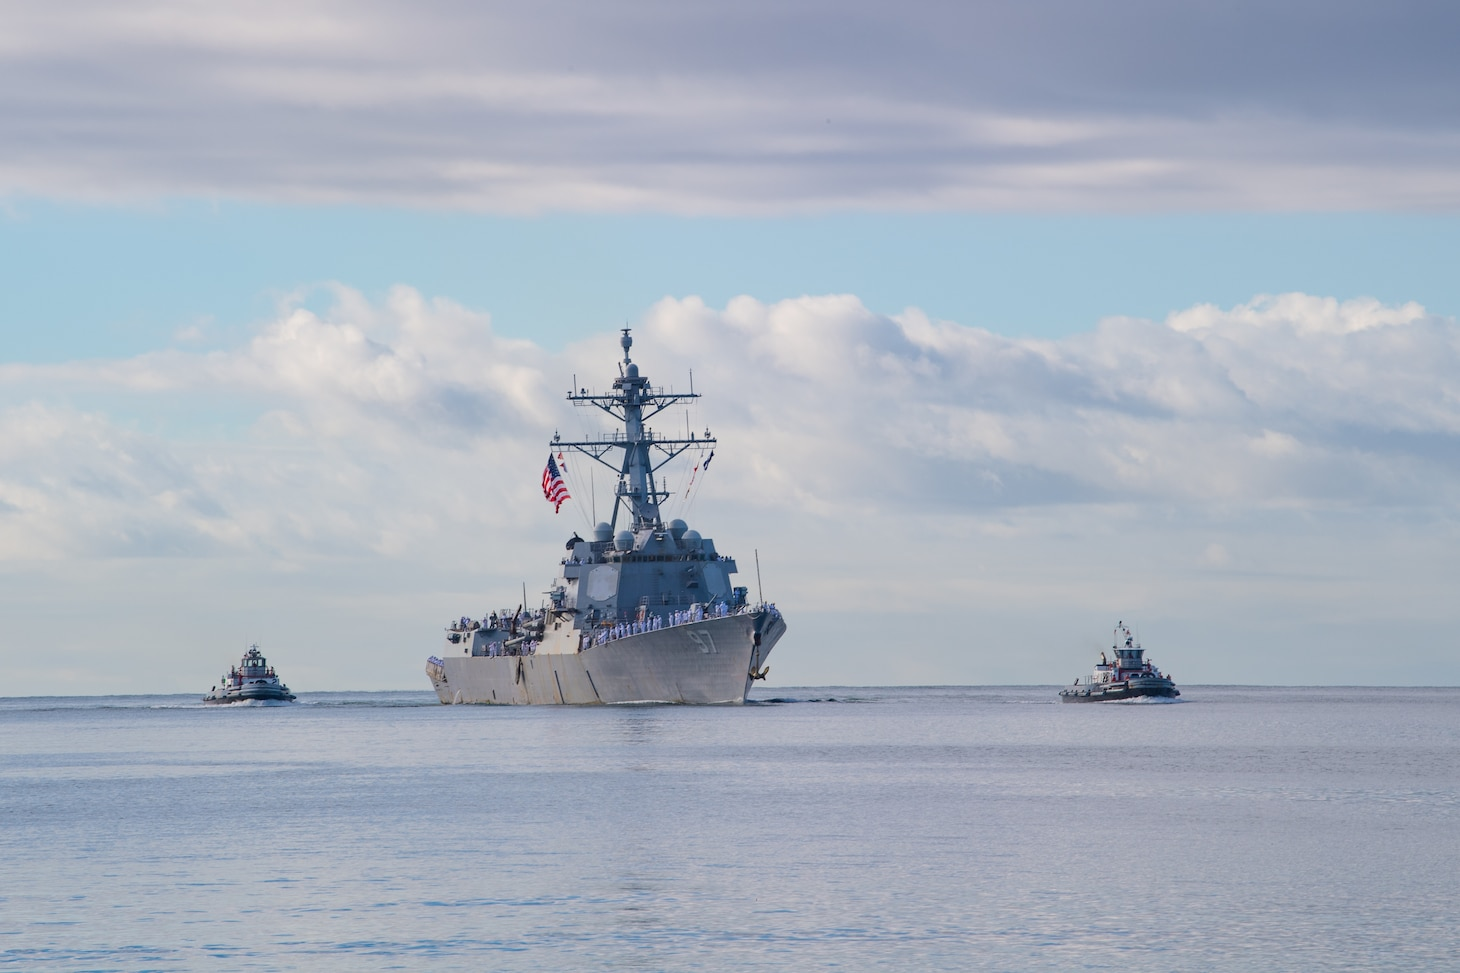 Guided-missile destroyer USS Halsey (DDG 97) returns to its homeport of Joint Base Pearl Harbor-Hickam